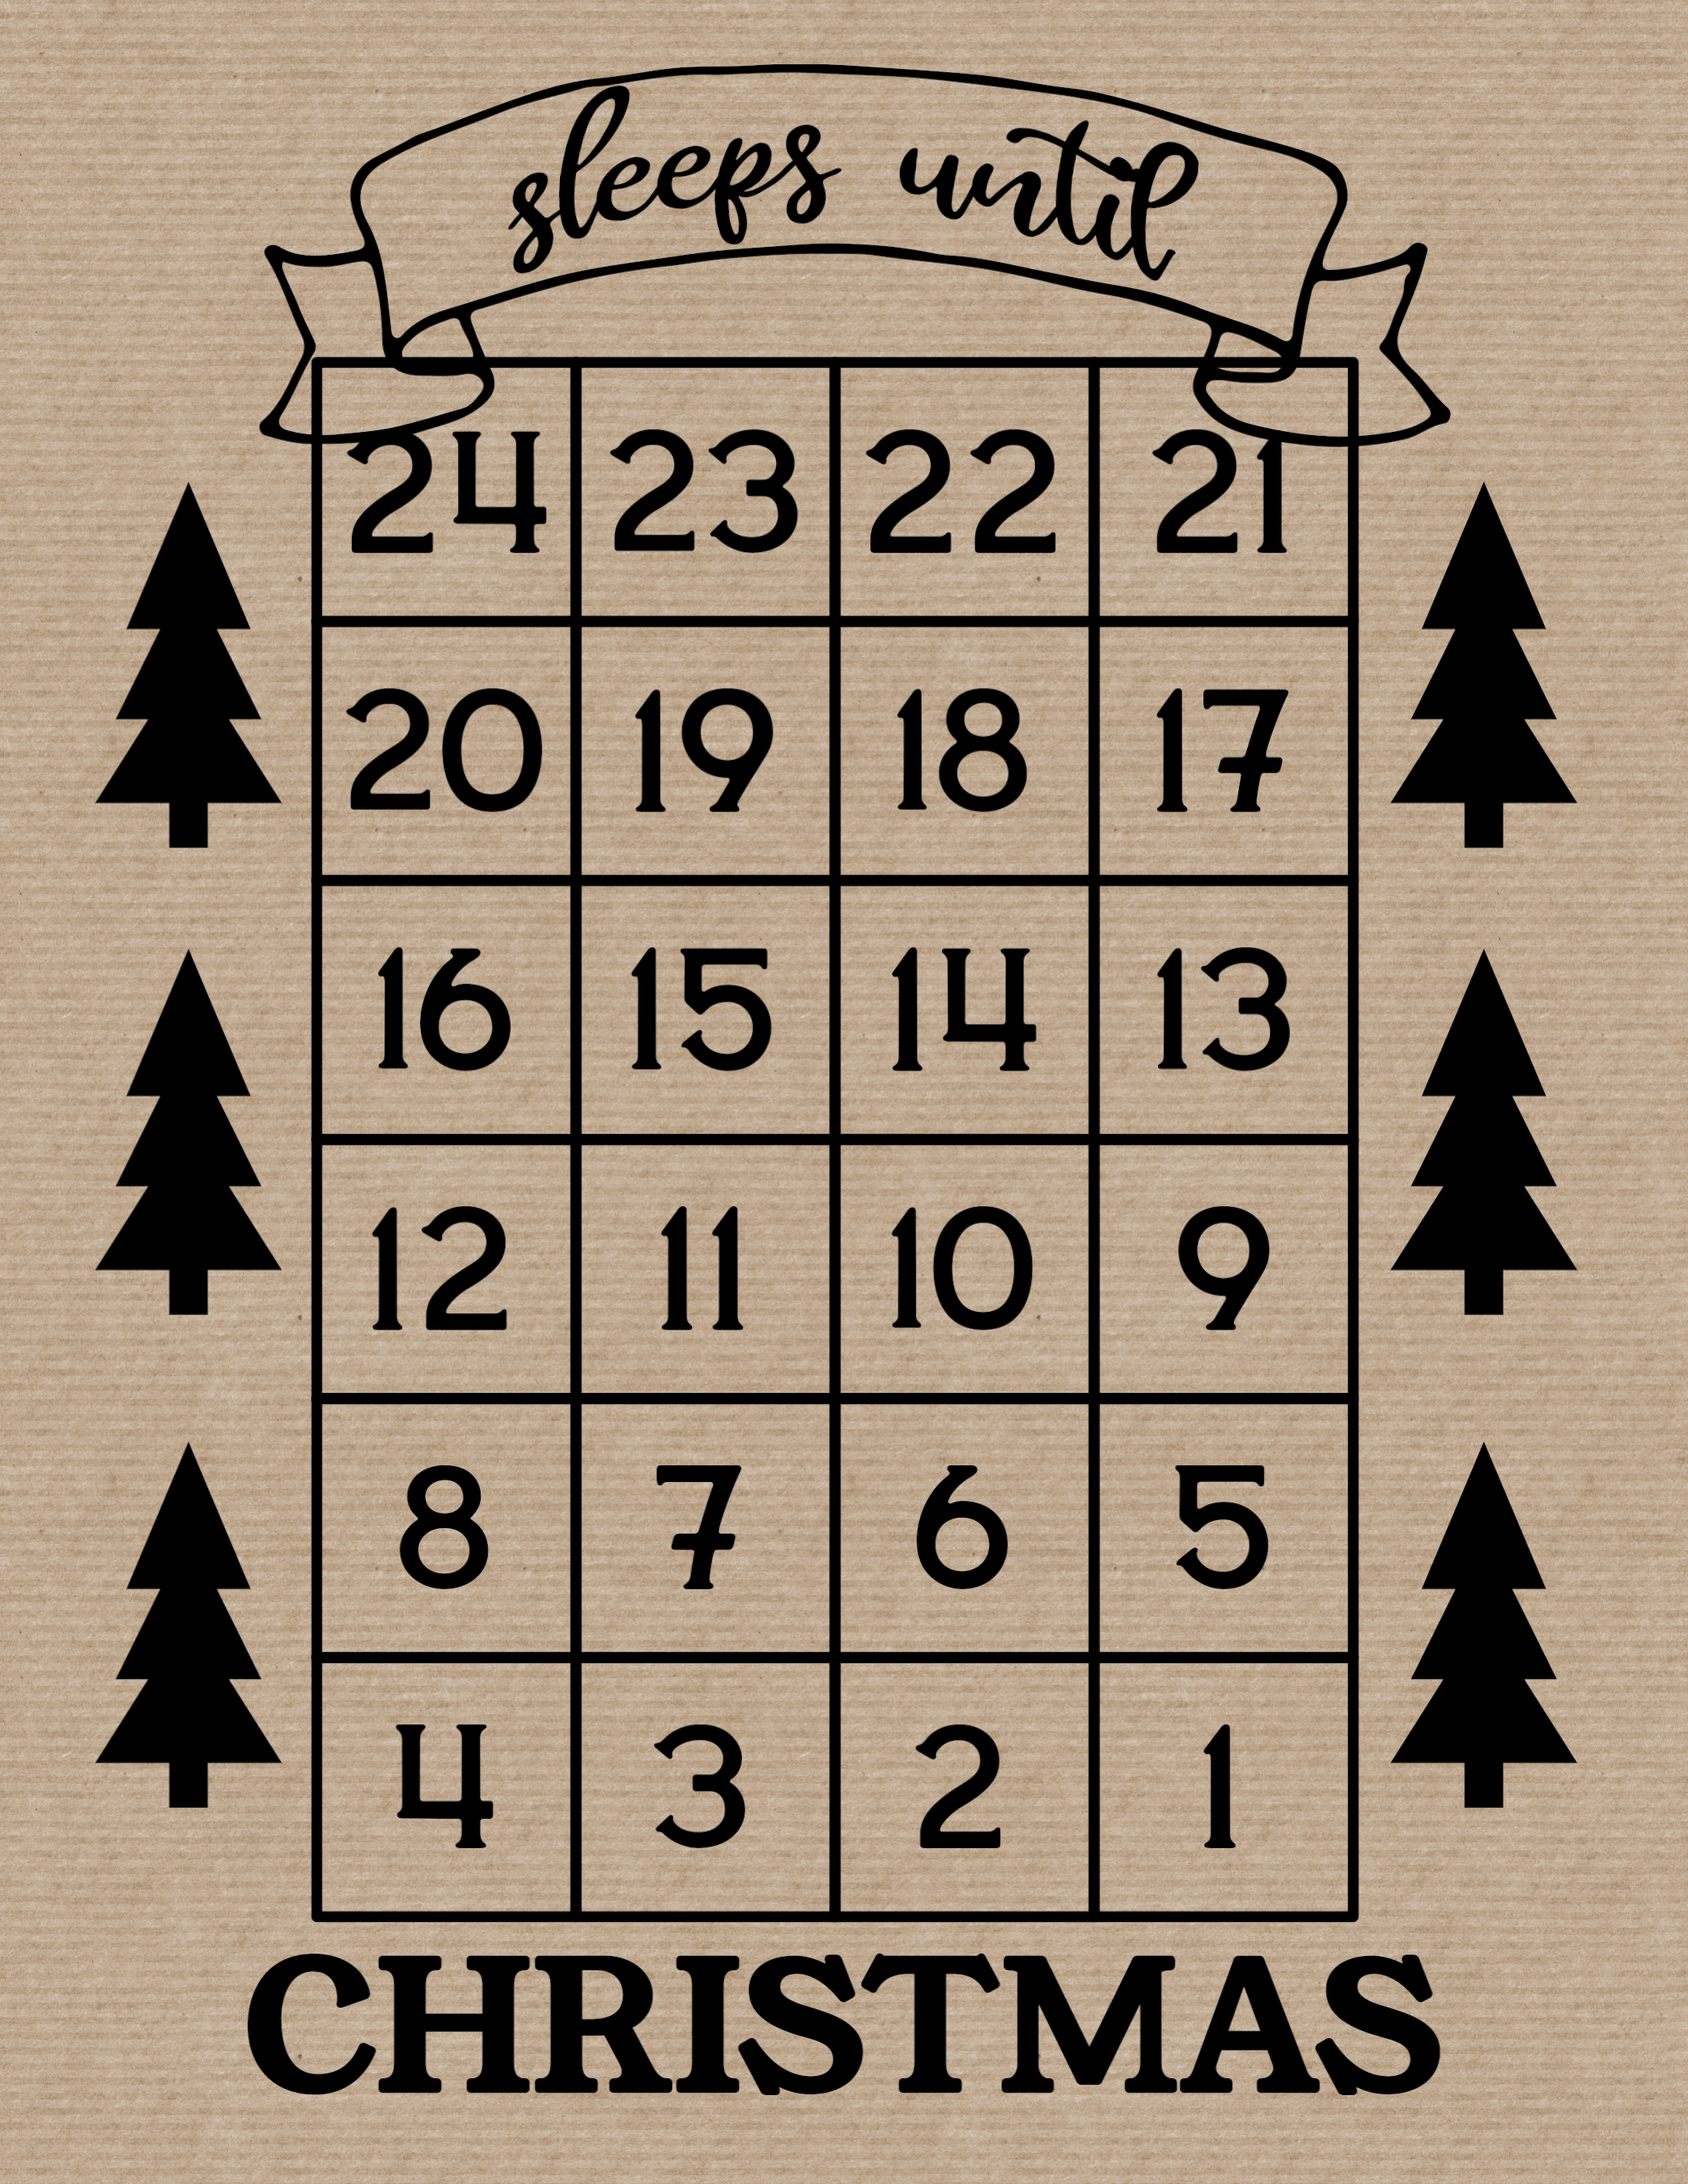 How Many Days Till Christmas.How Many Days Until Christmas Free Printable Paper Trail